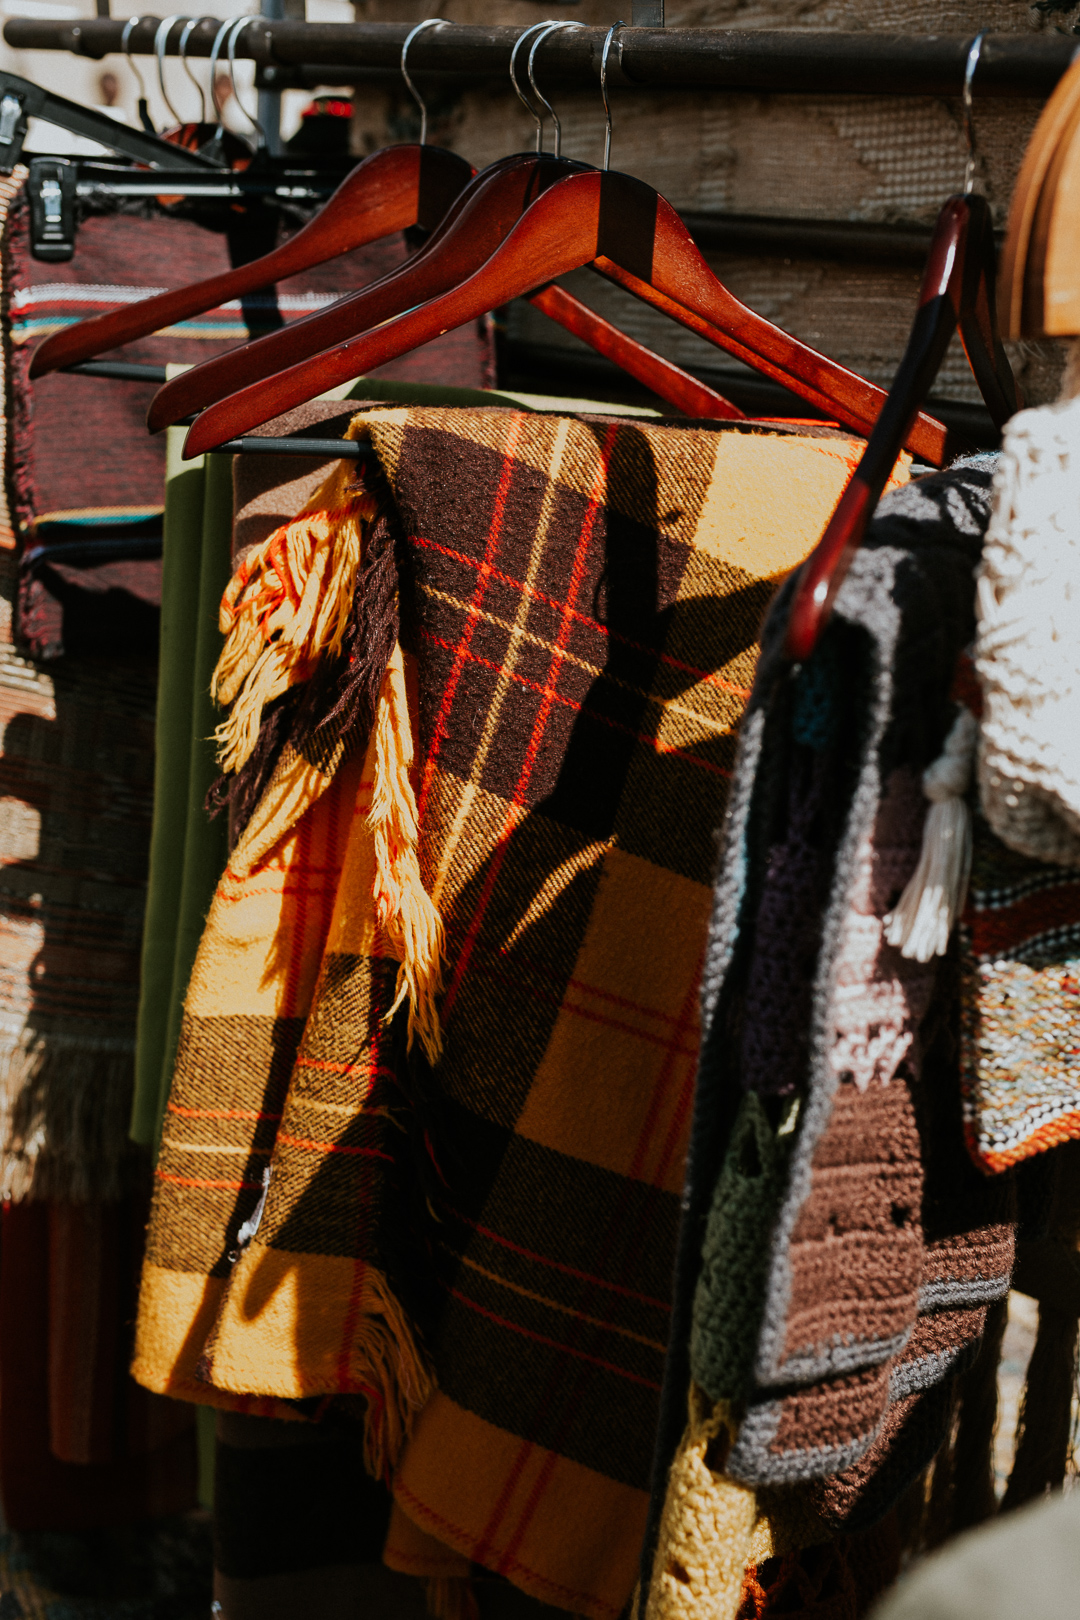 Get Cozy with these plaid blankets from Vallery Colletions